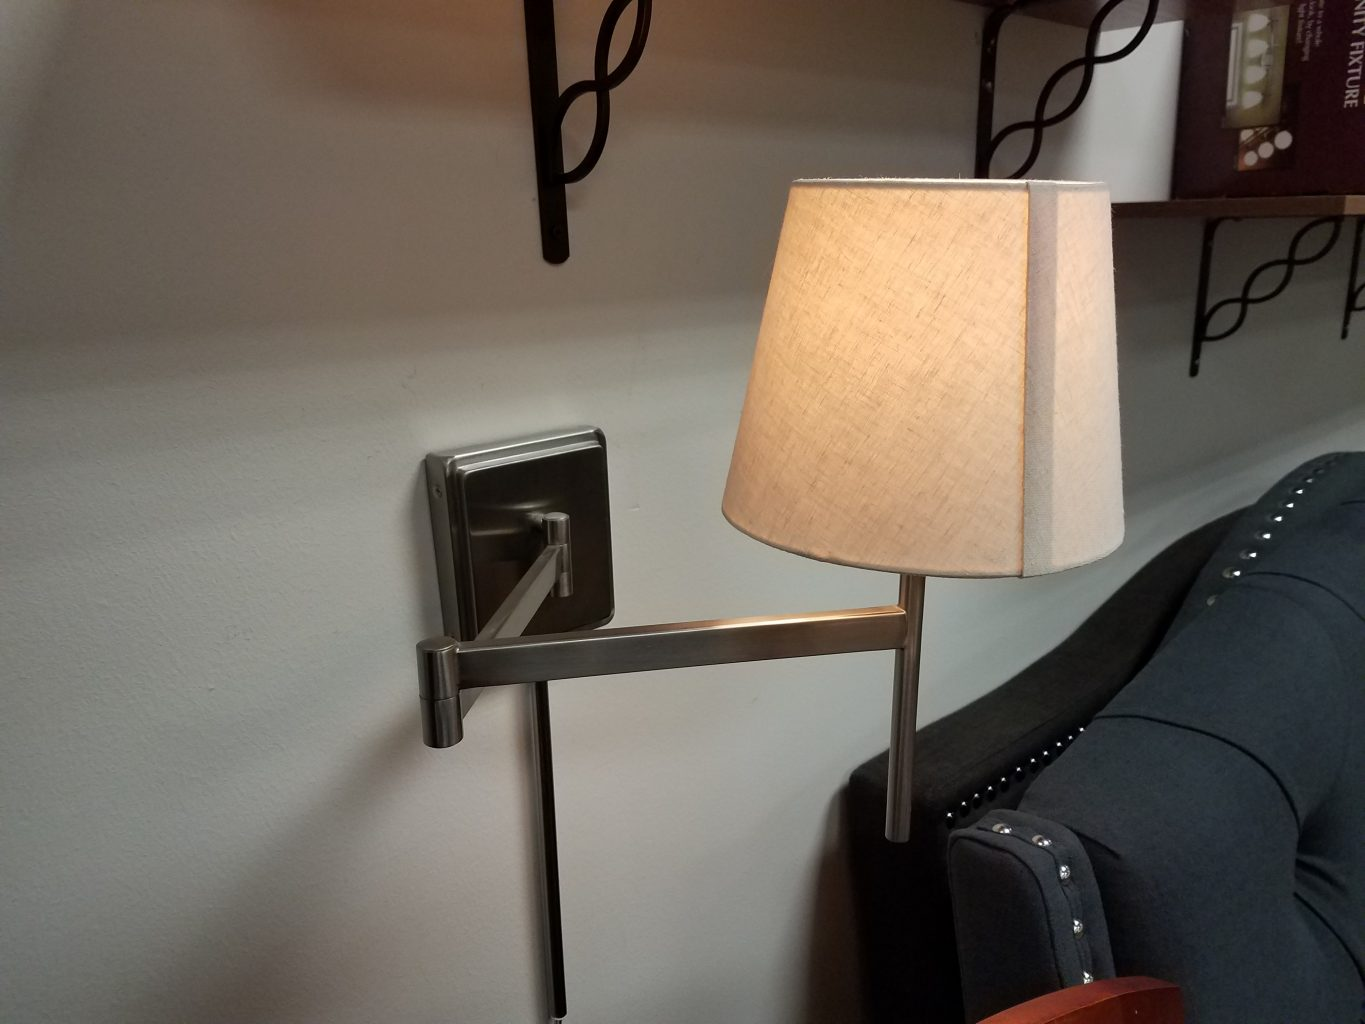 Wall Lamps For Renters : Wall Lamp with Adjustable Arm